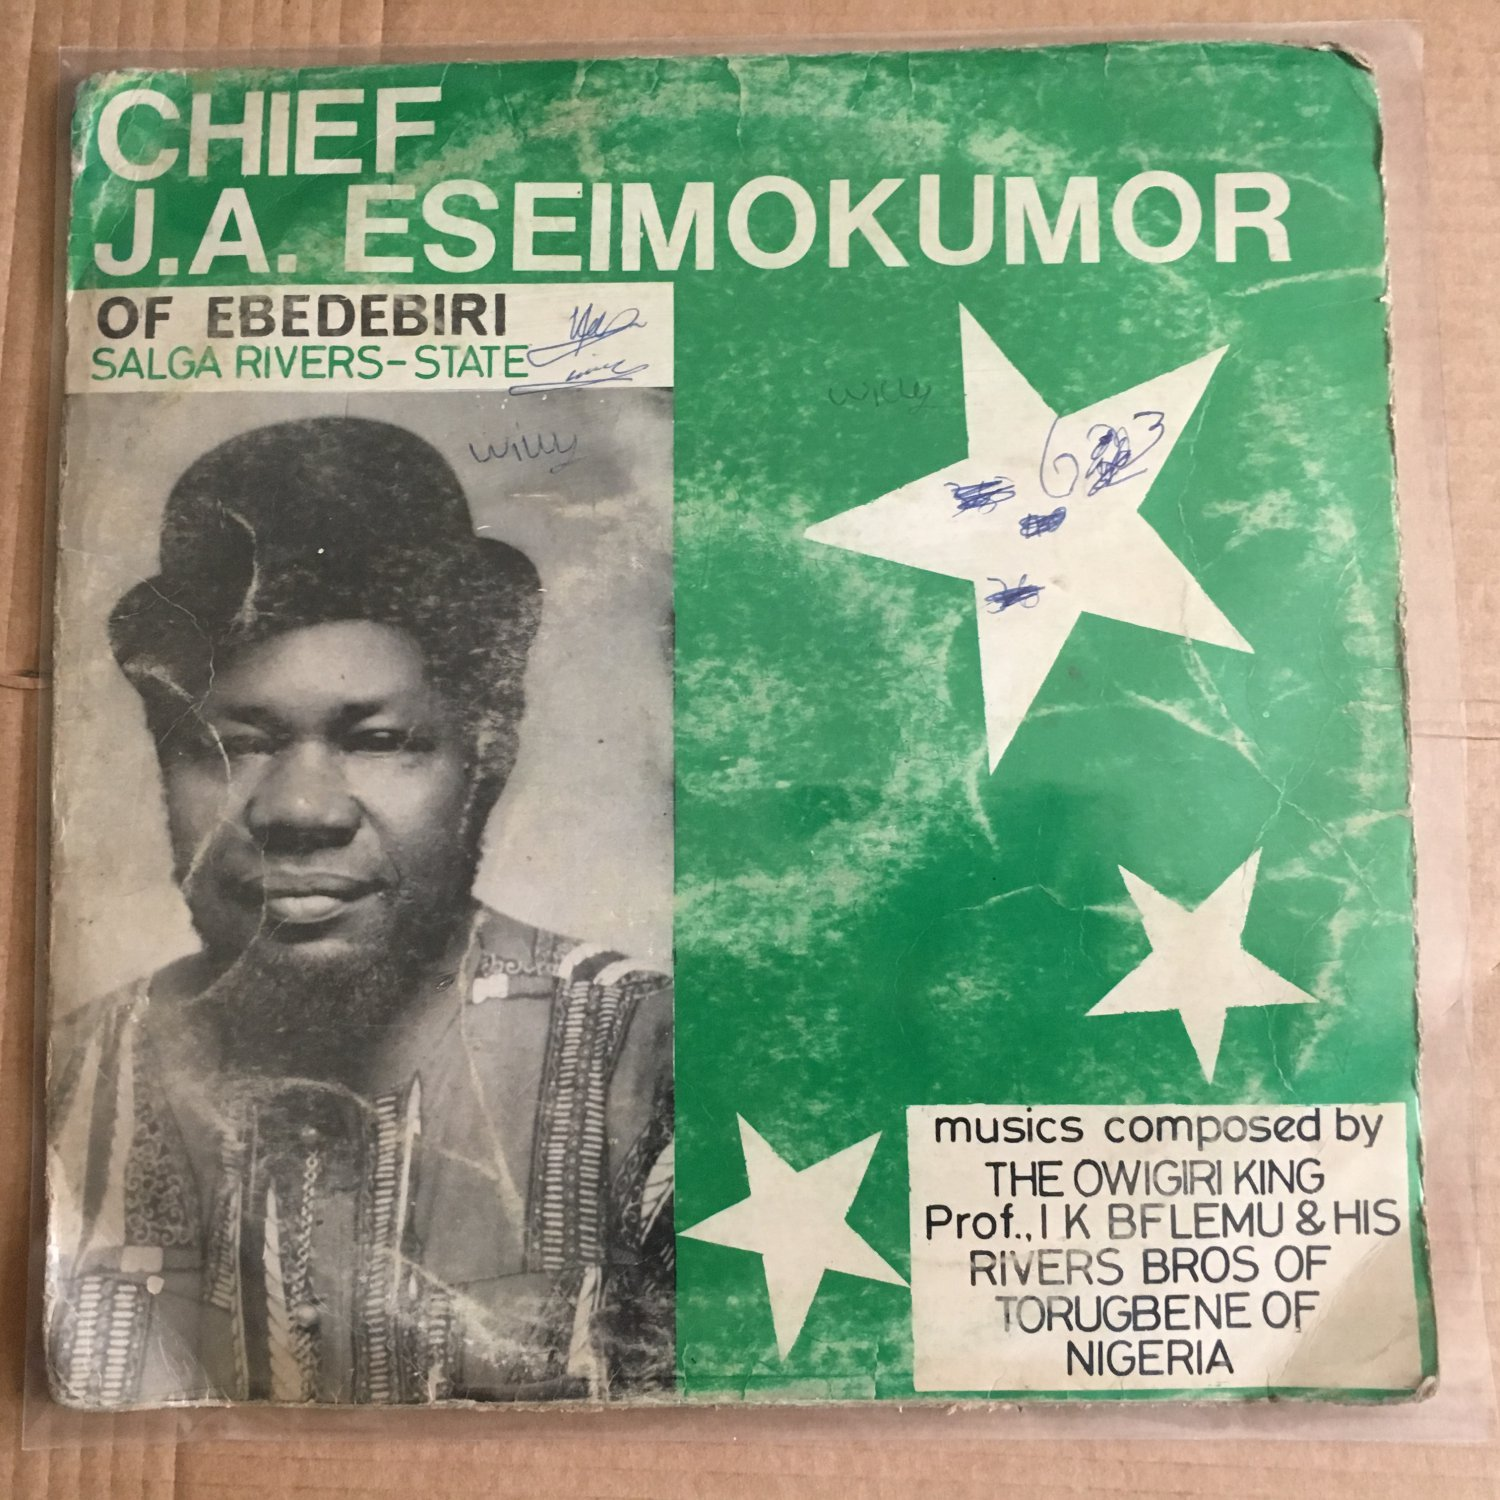 PROF IK BELEMU & HIS RIVERS BROS LP Chief JA Eseimokumor NIGERIA HIGHLIFE mp3 LISTEN